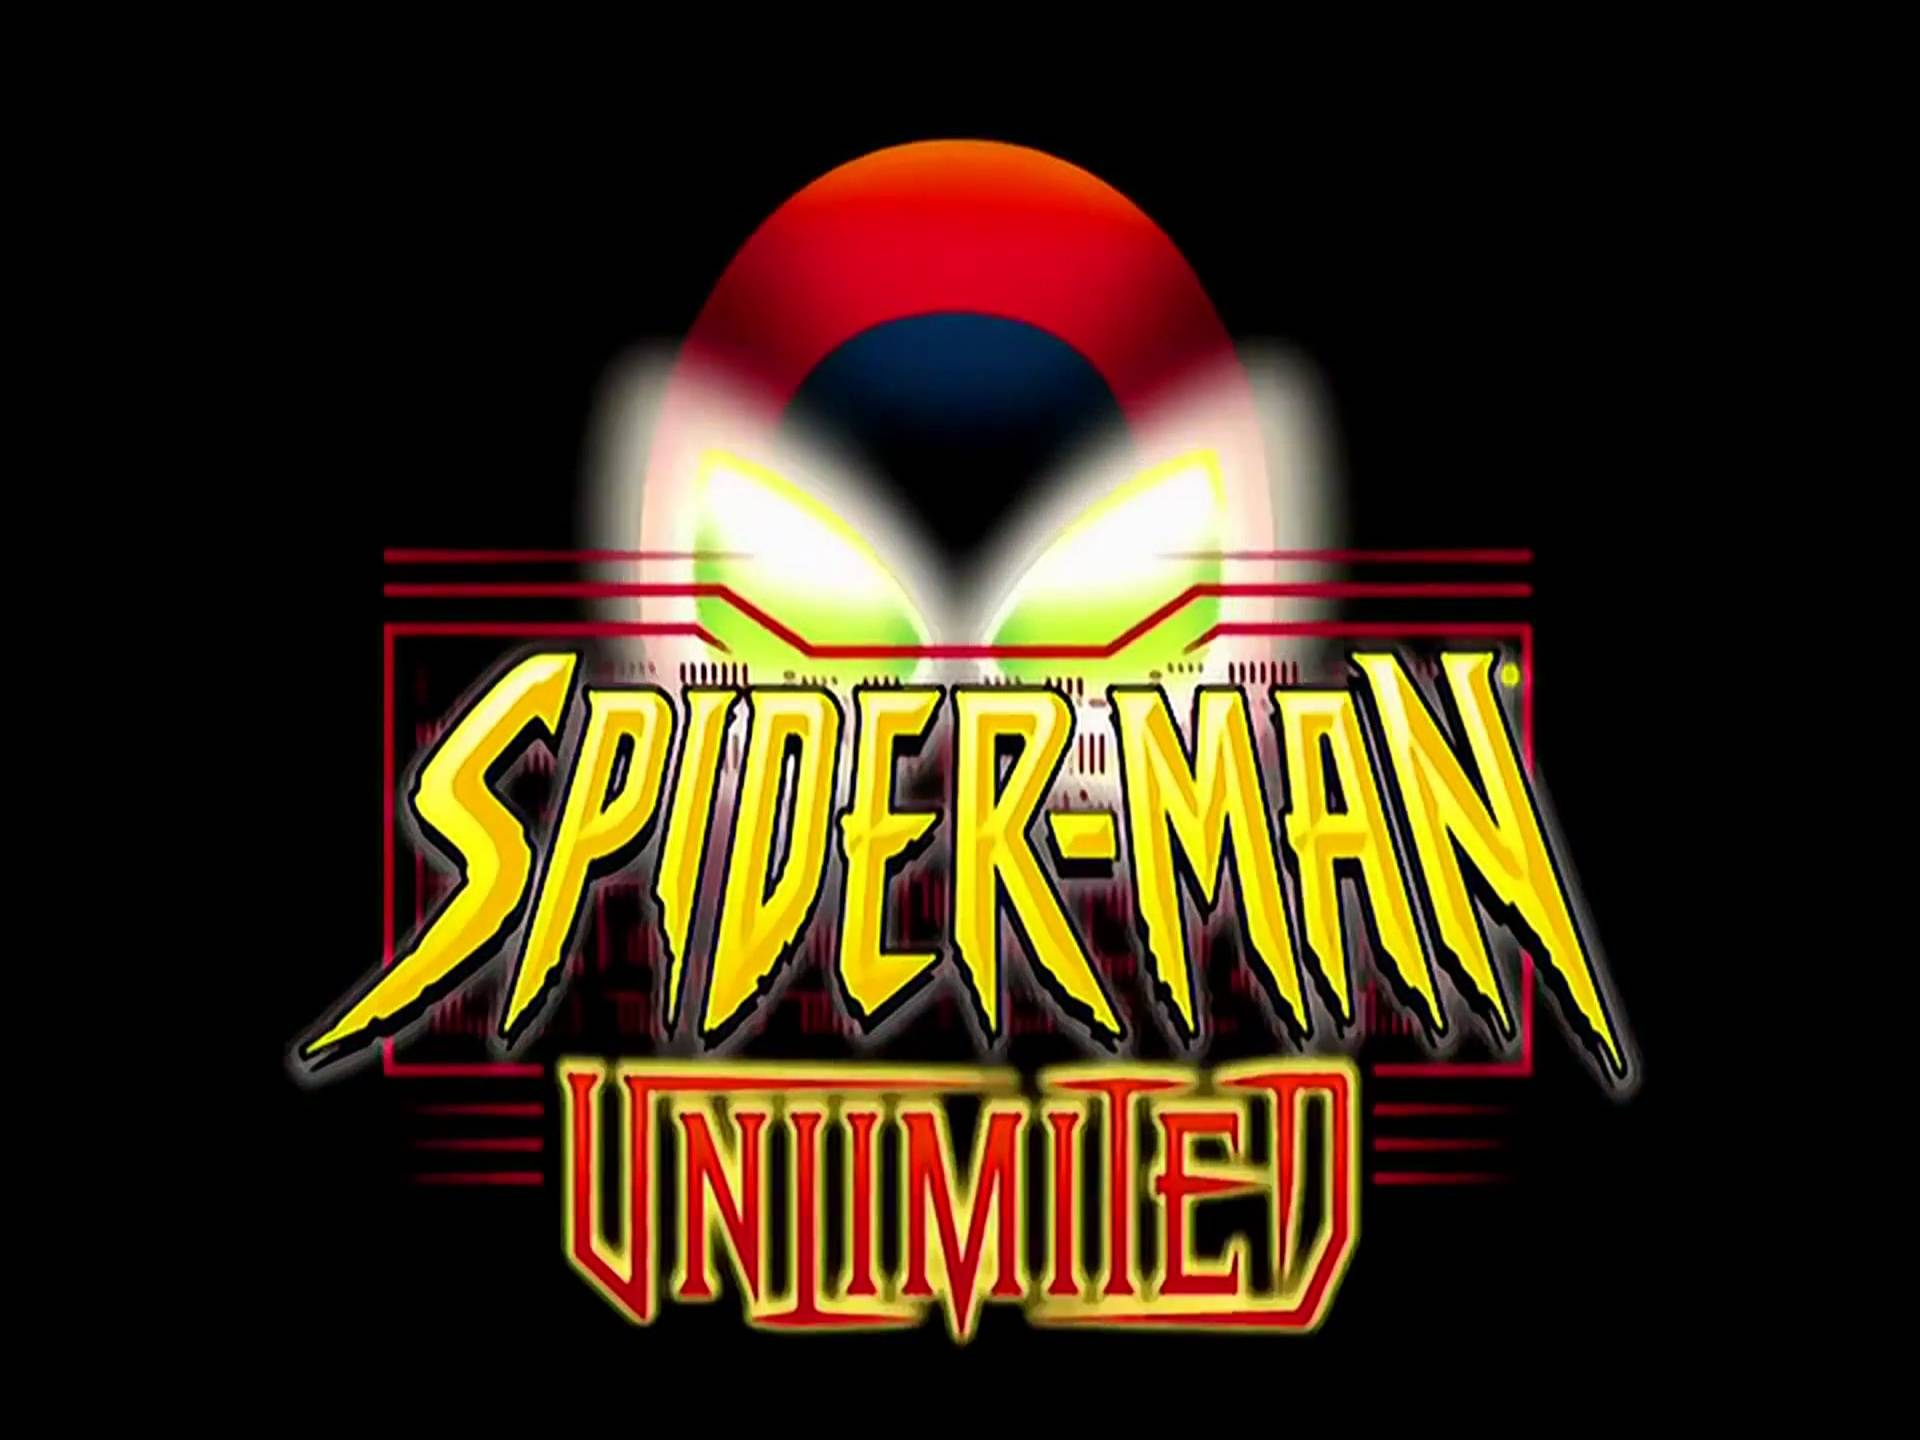 Spider Man Unlimited Wallpaper Wallpaper for Spider Man Unlimited 1920x1440